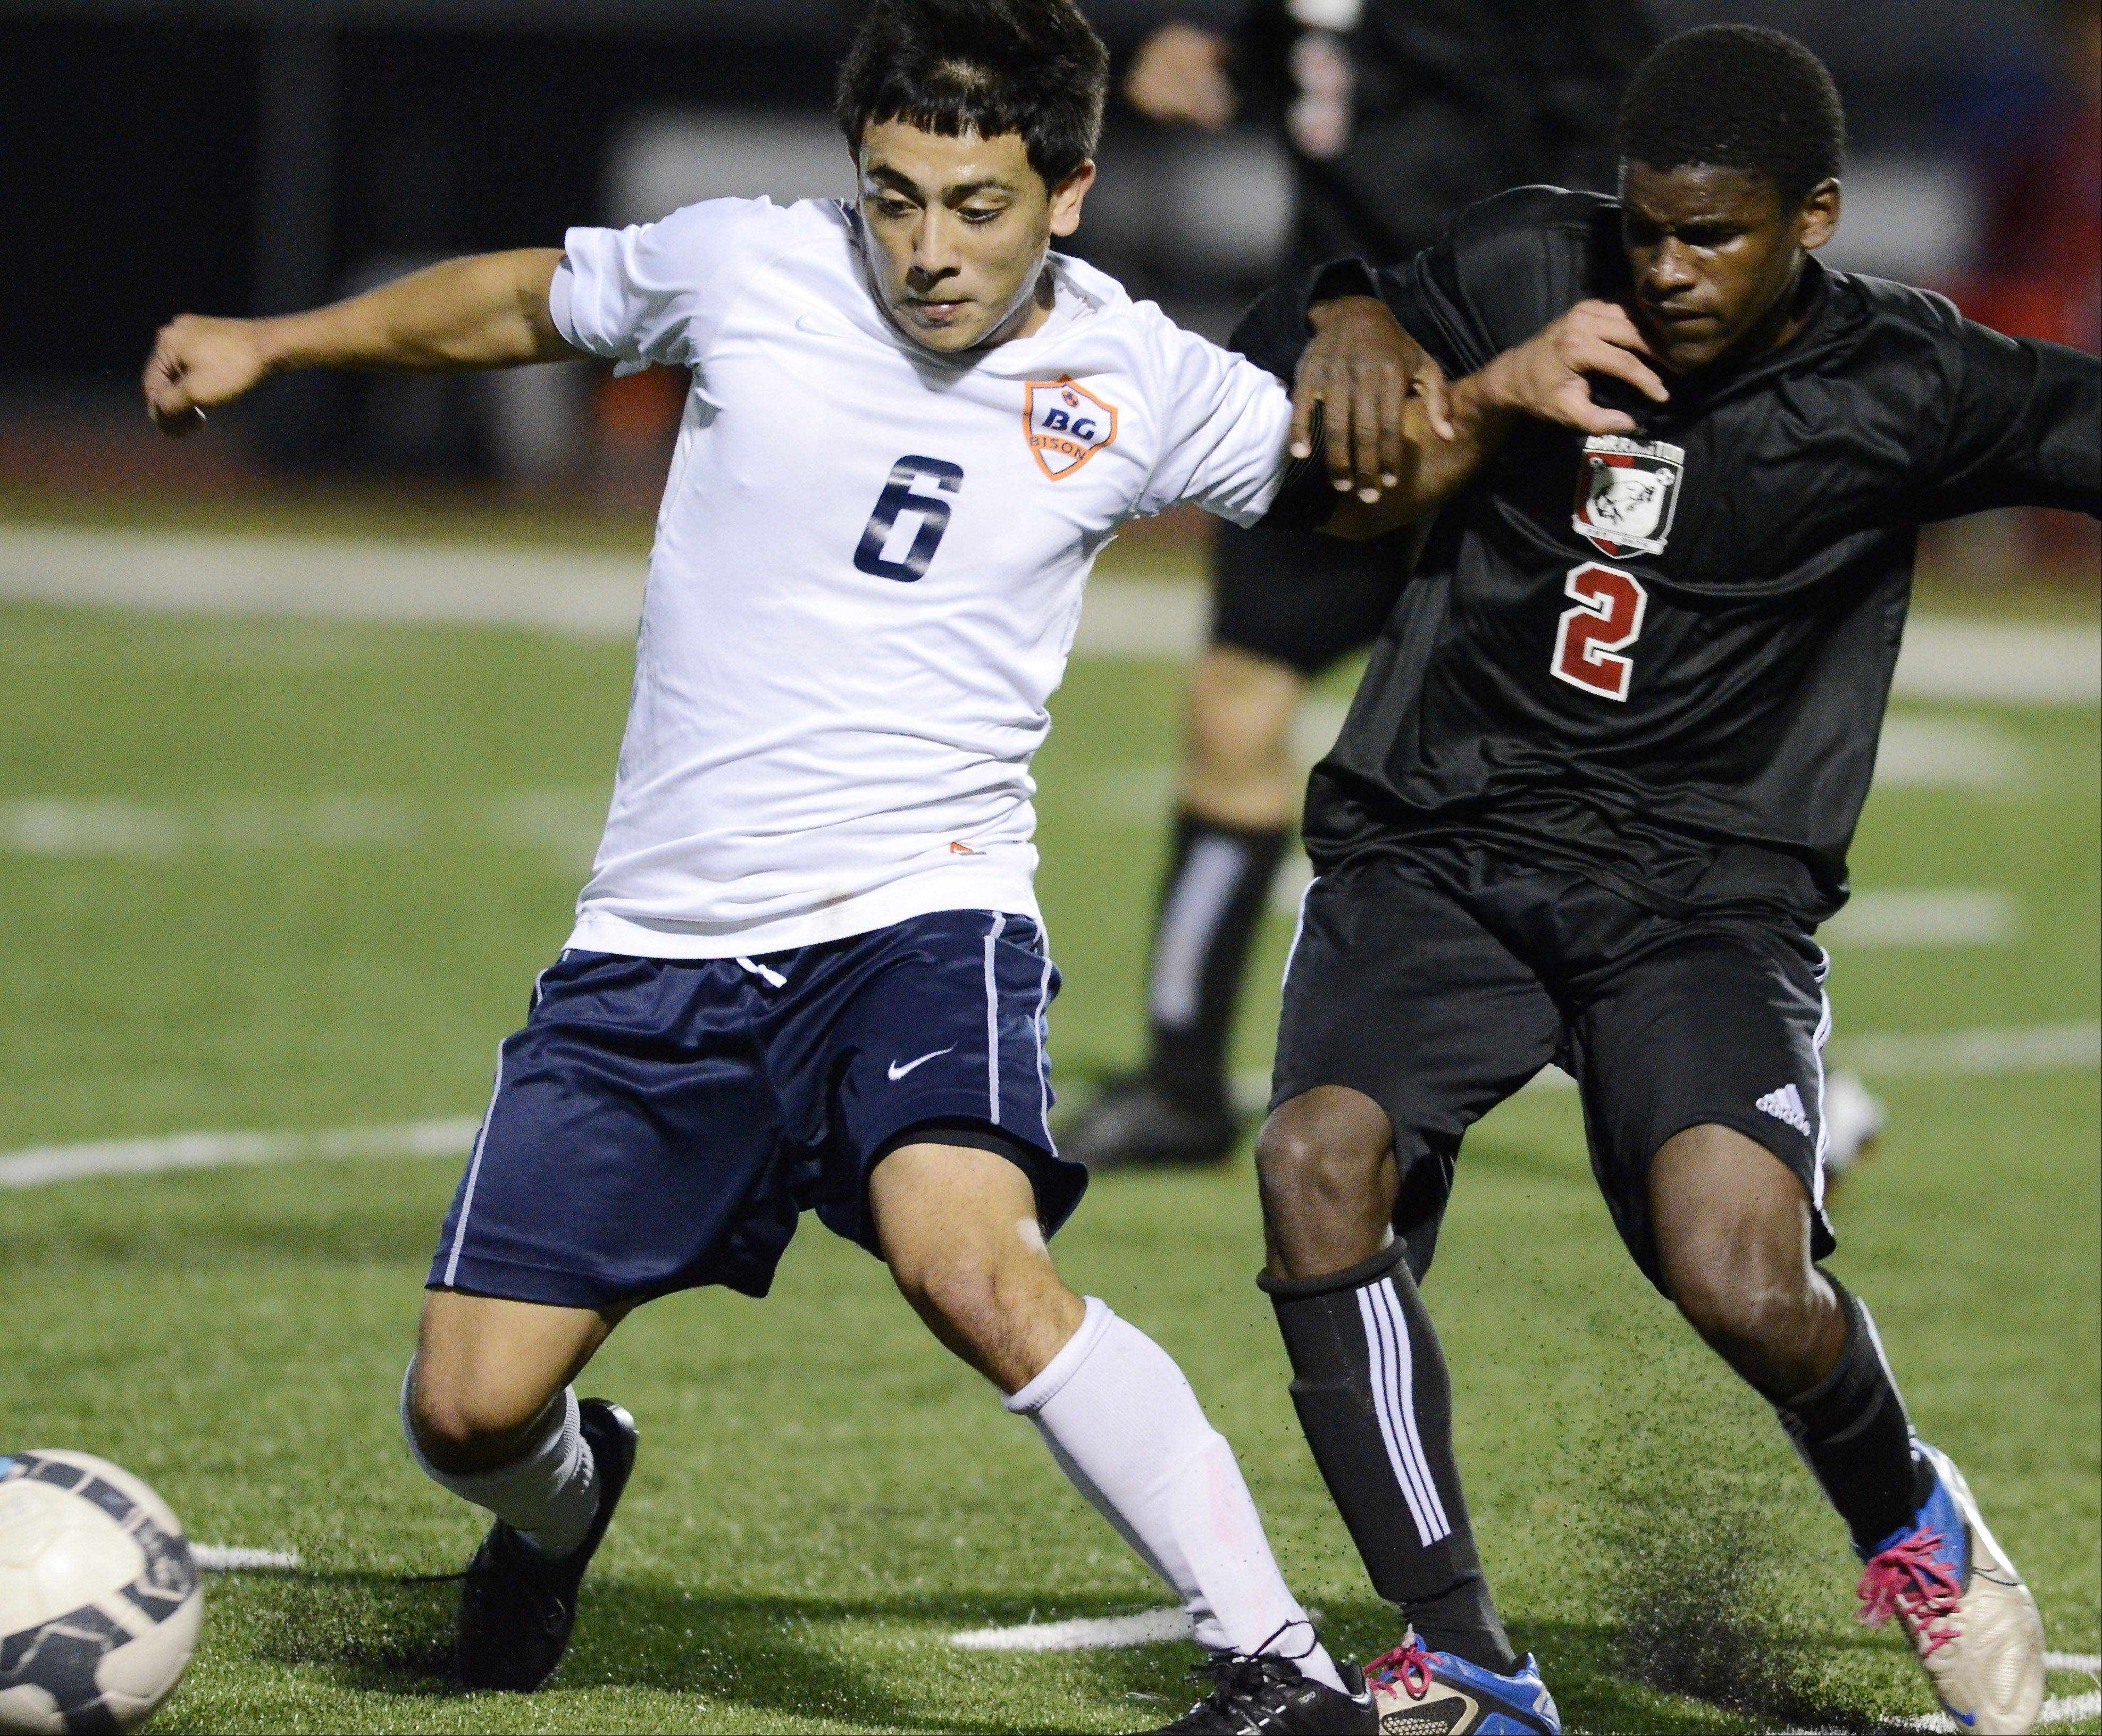 Buffalo Grove's Irving Eloiza, left, and Barrington's Kendall Stork make contact as they pursue the ball Tuesday.